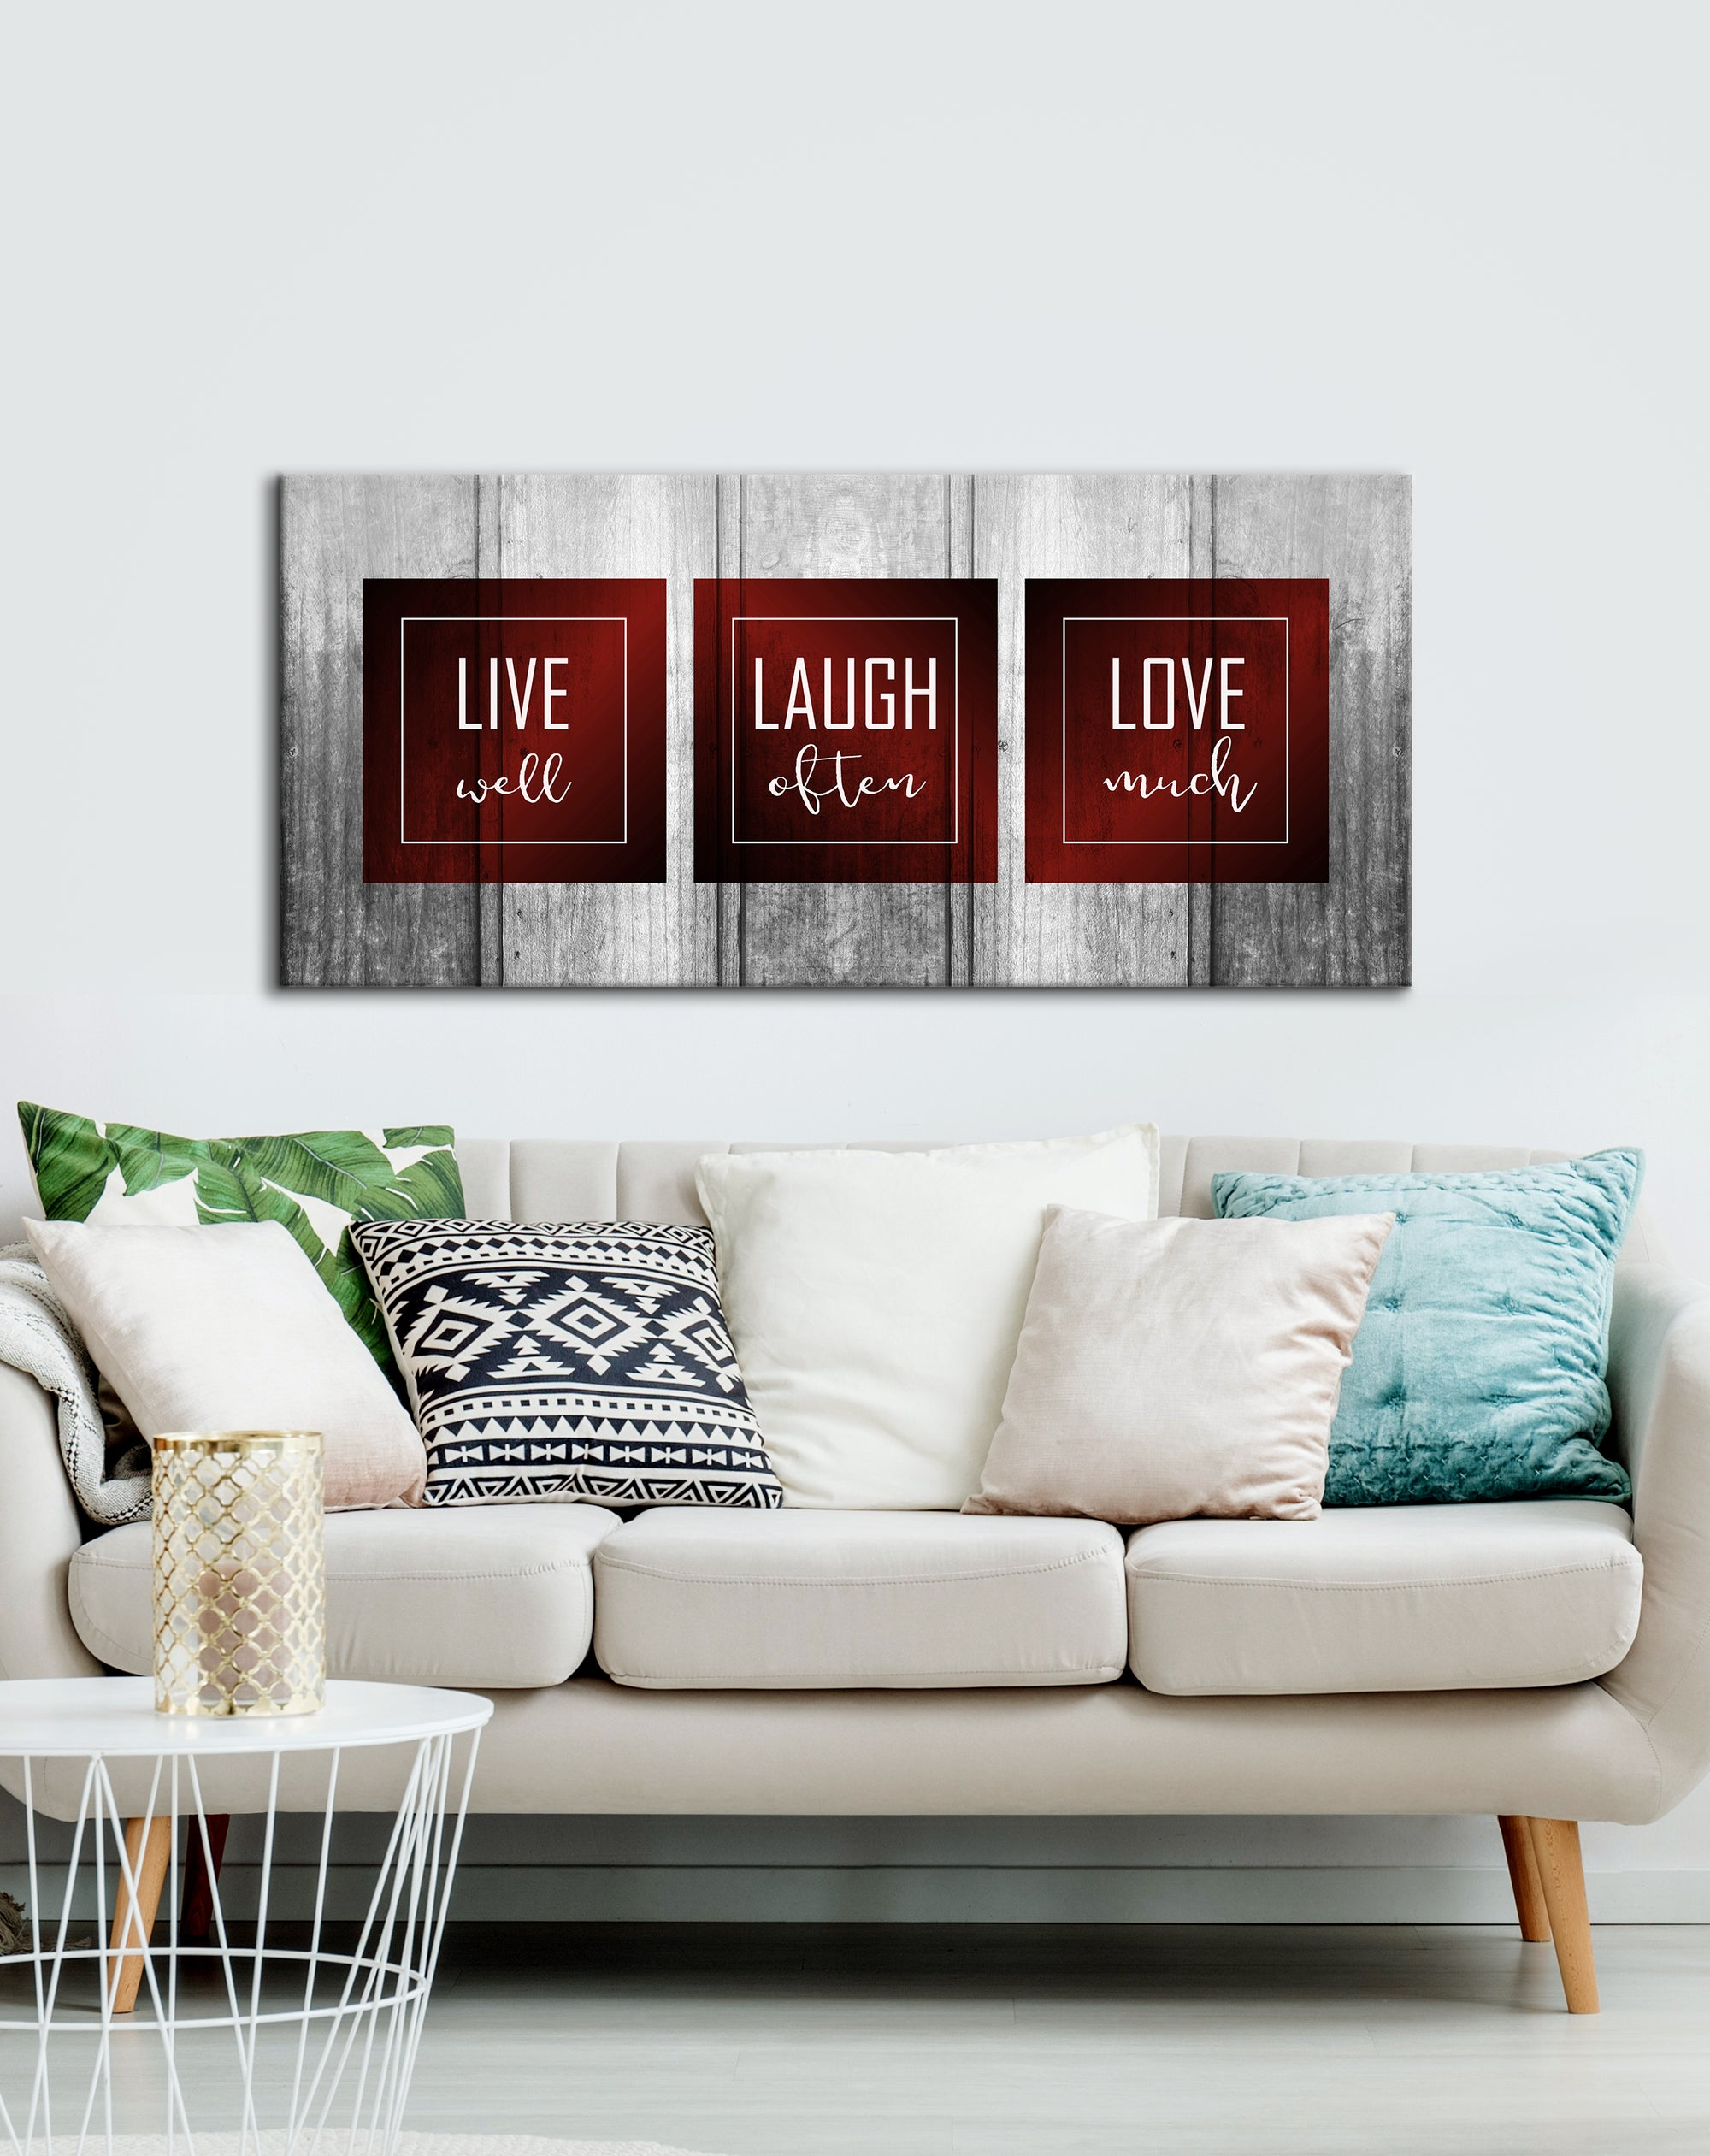 Bedroom Decor Wall Art: Live Laugh Love Bedroom  Large Wall Art 2 Sizes Available  (Wood Frame Ready To Hang)